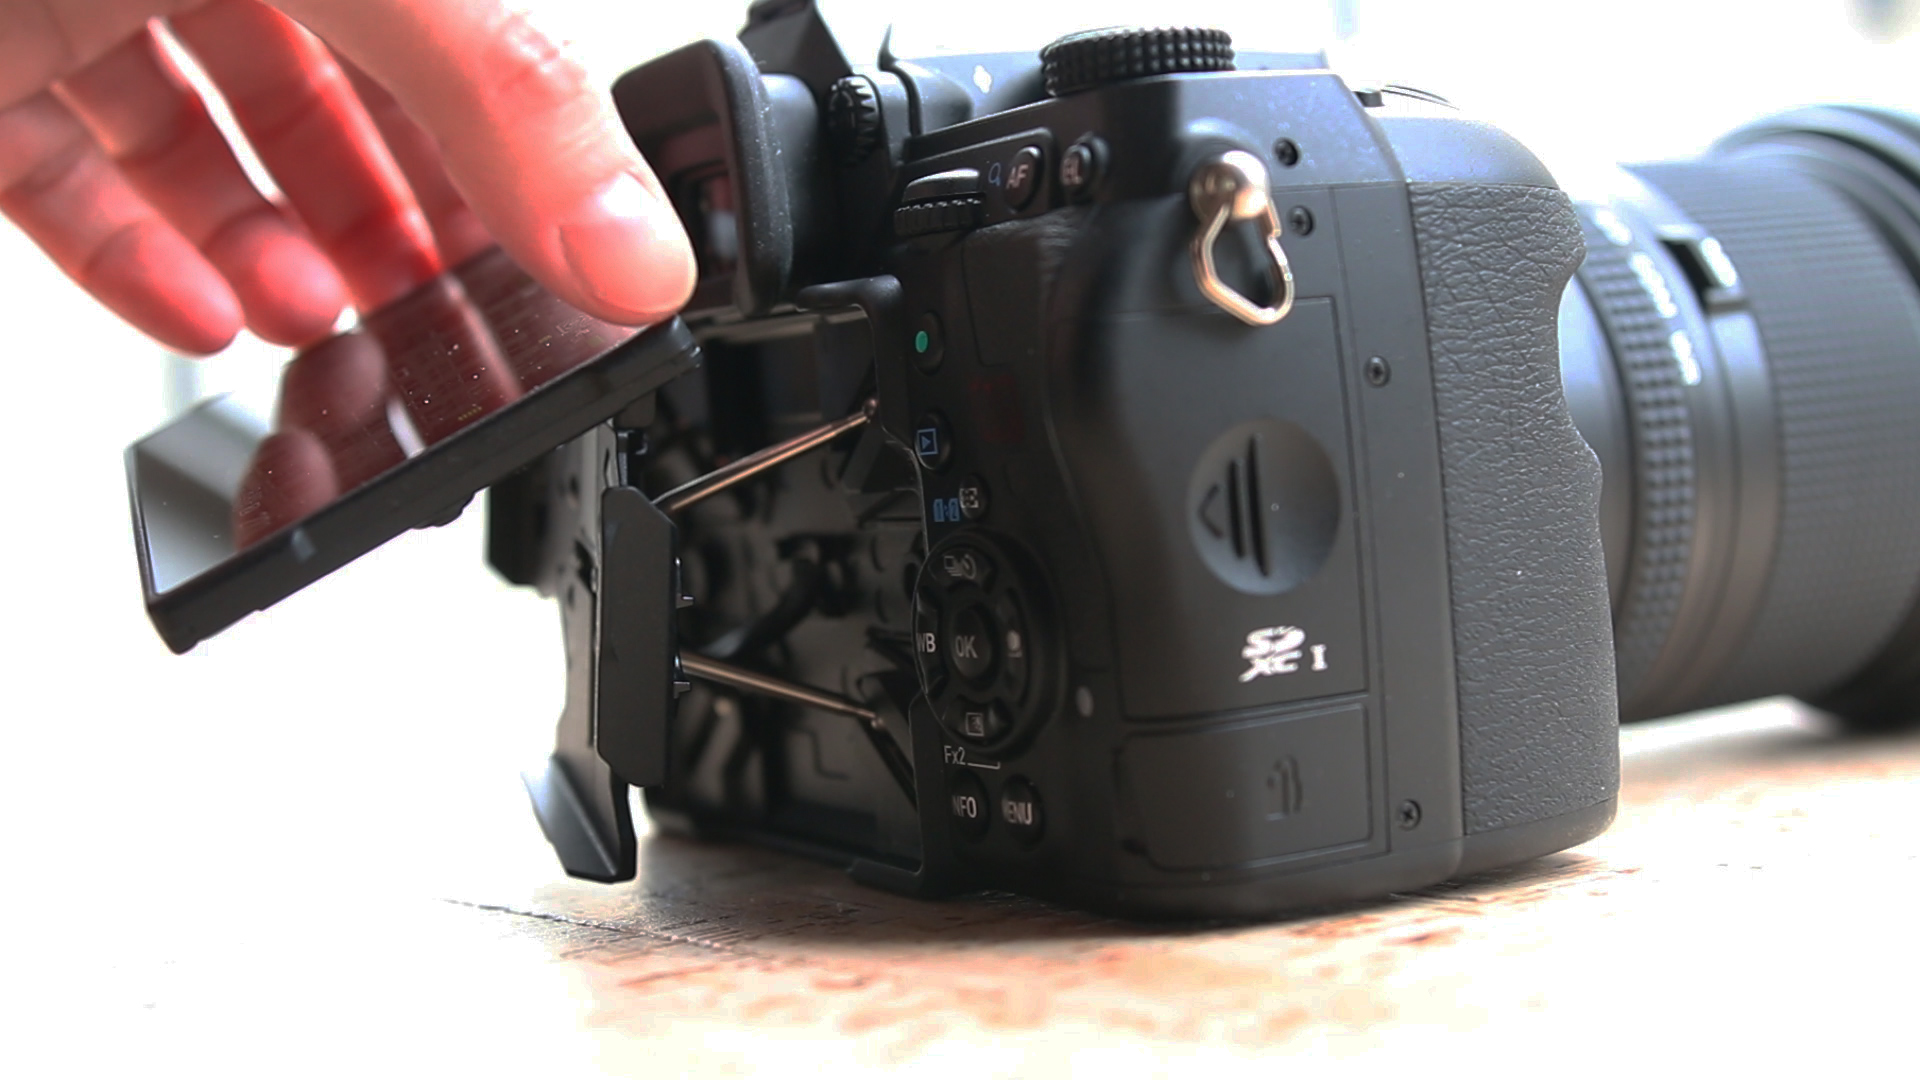 Video: The Pentax K-1's unique touches